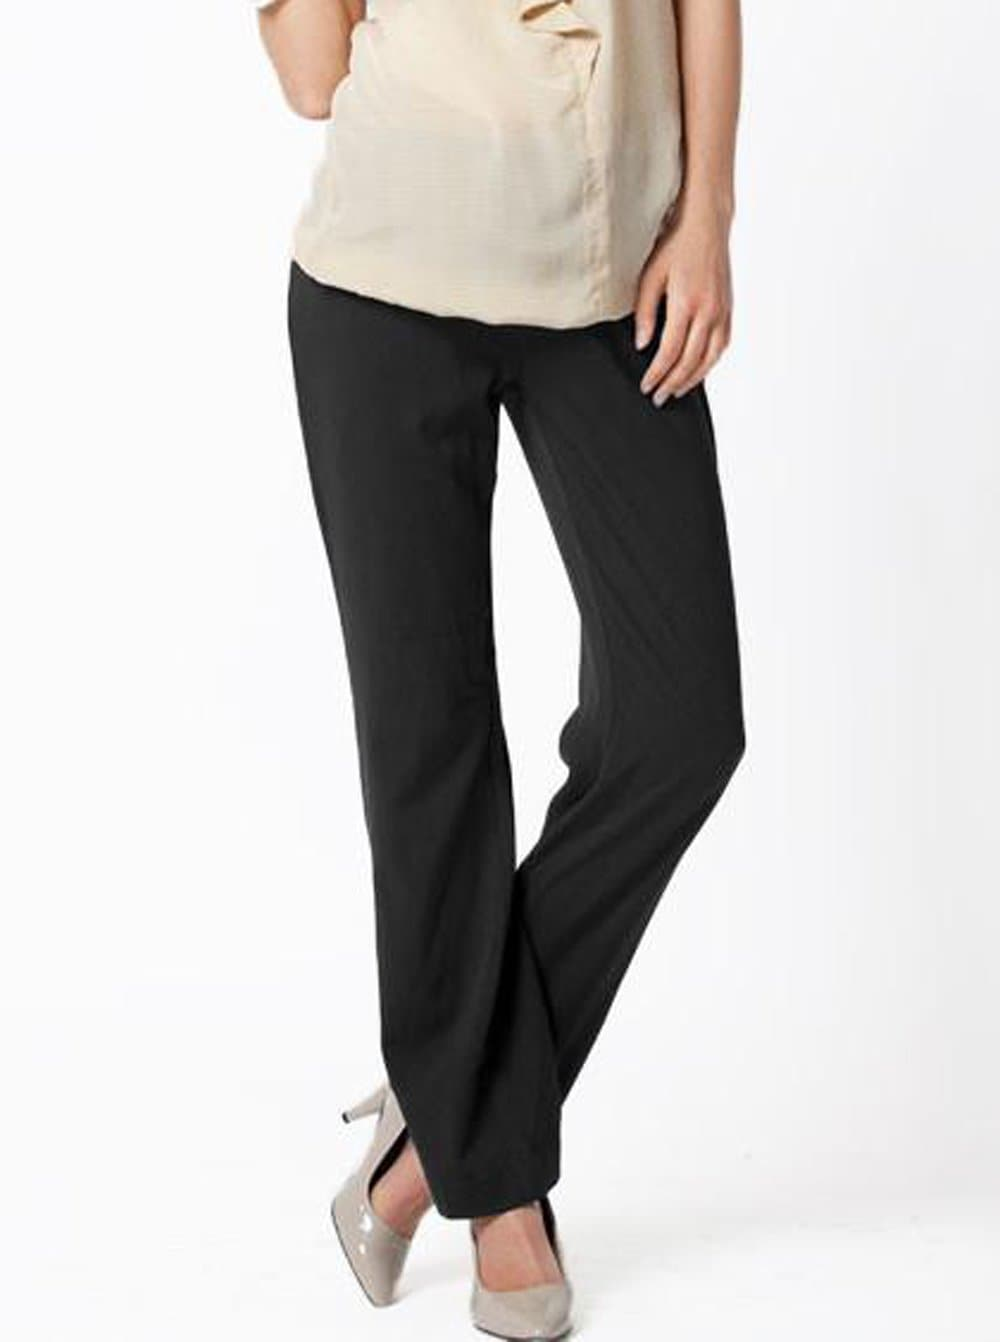 Maternity Pants in Straight Cut - Dark Grey - Angel Maternity - Maternity clothes - shop online